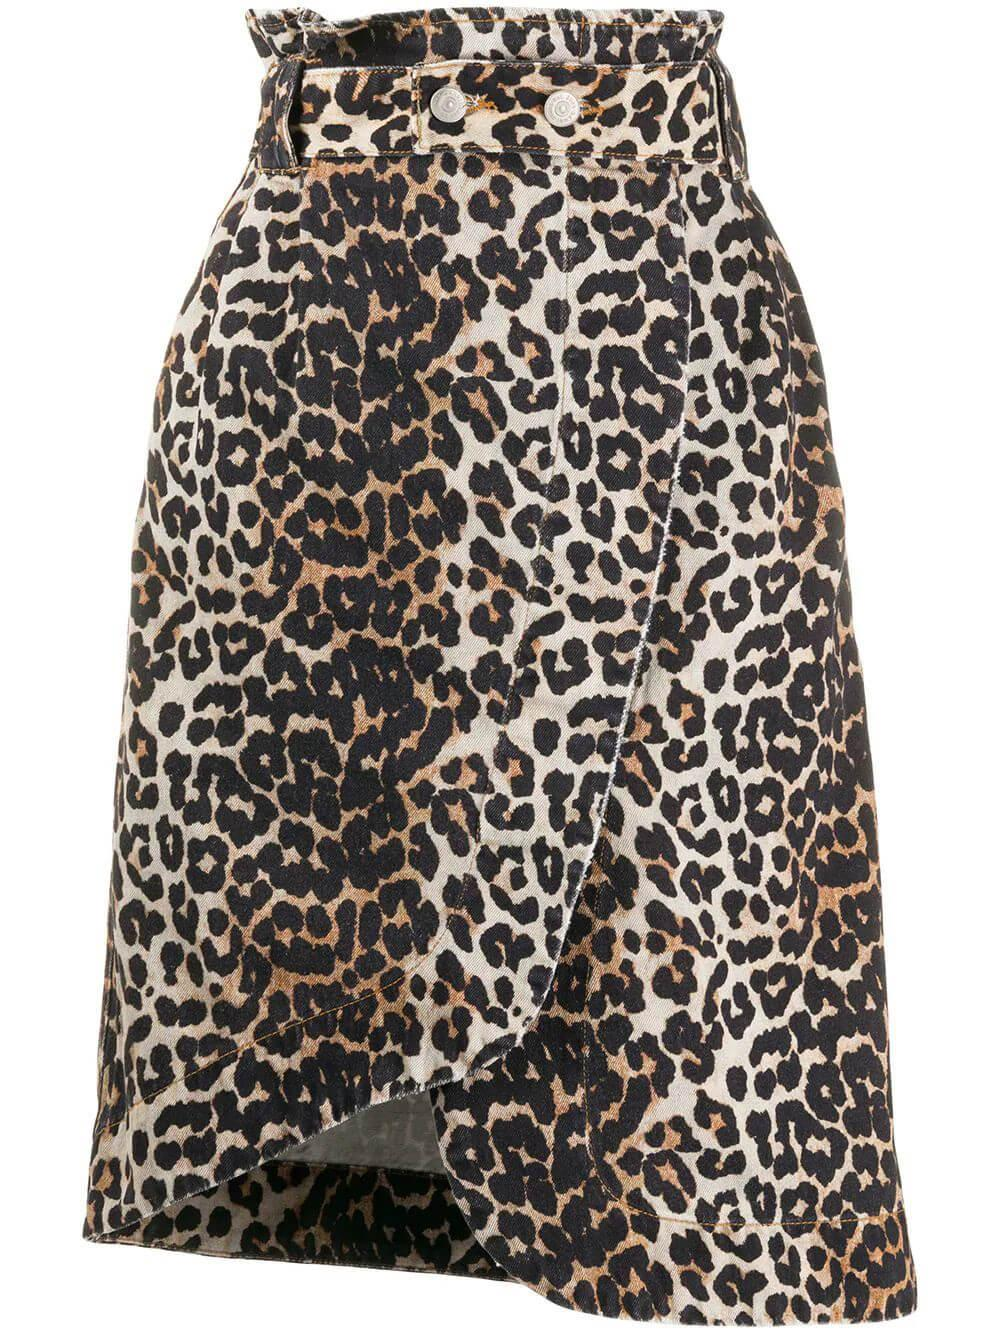 Leopard Print Denim Skirt Item # F4194